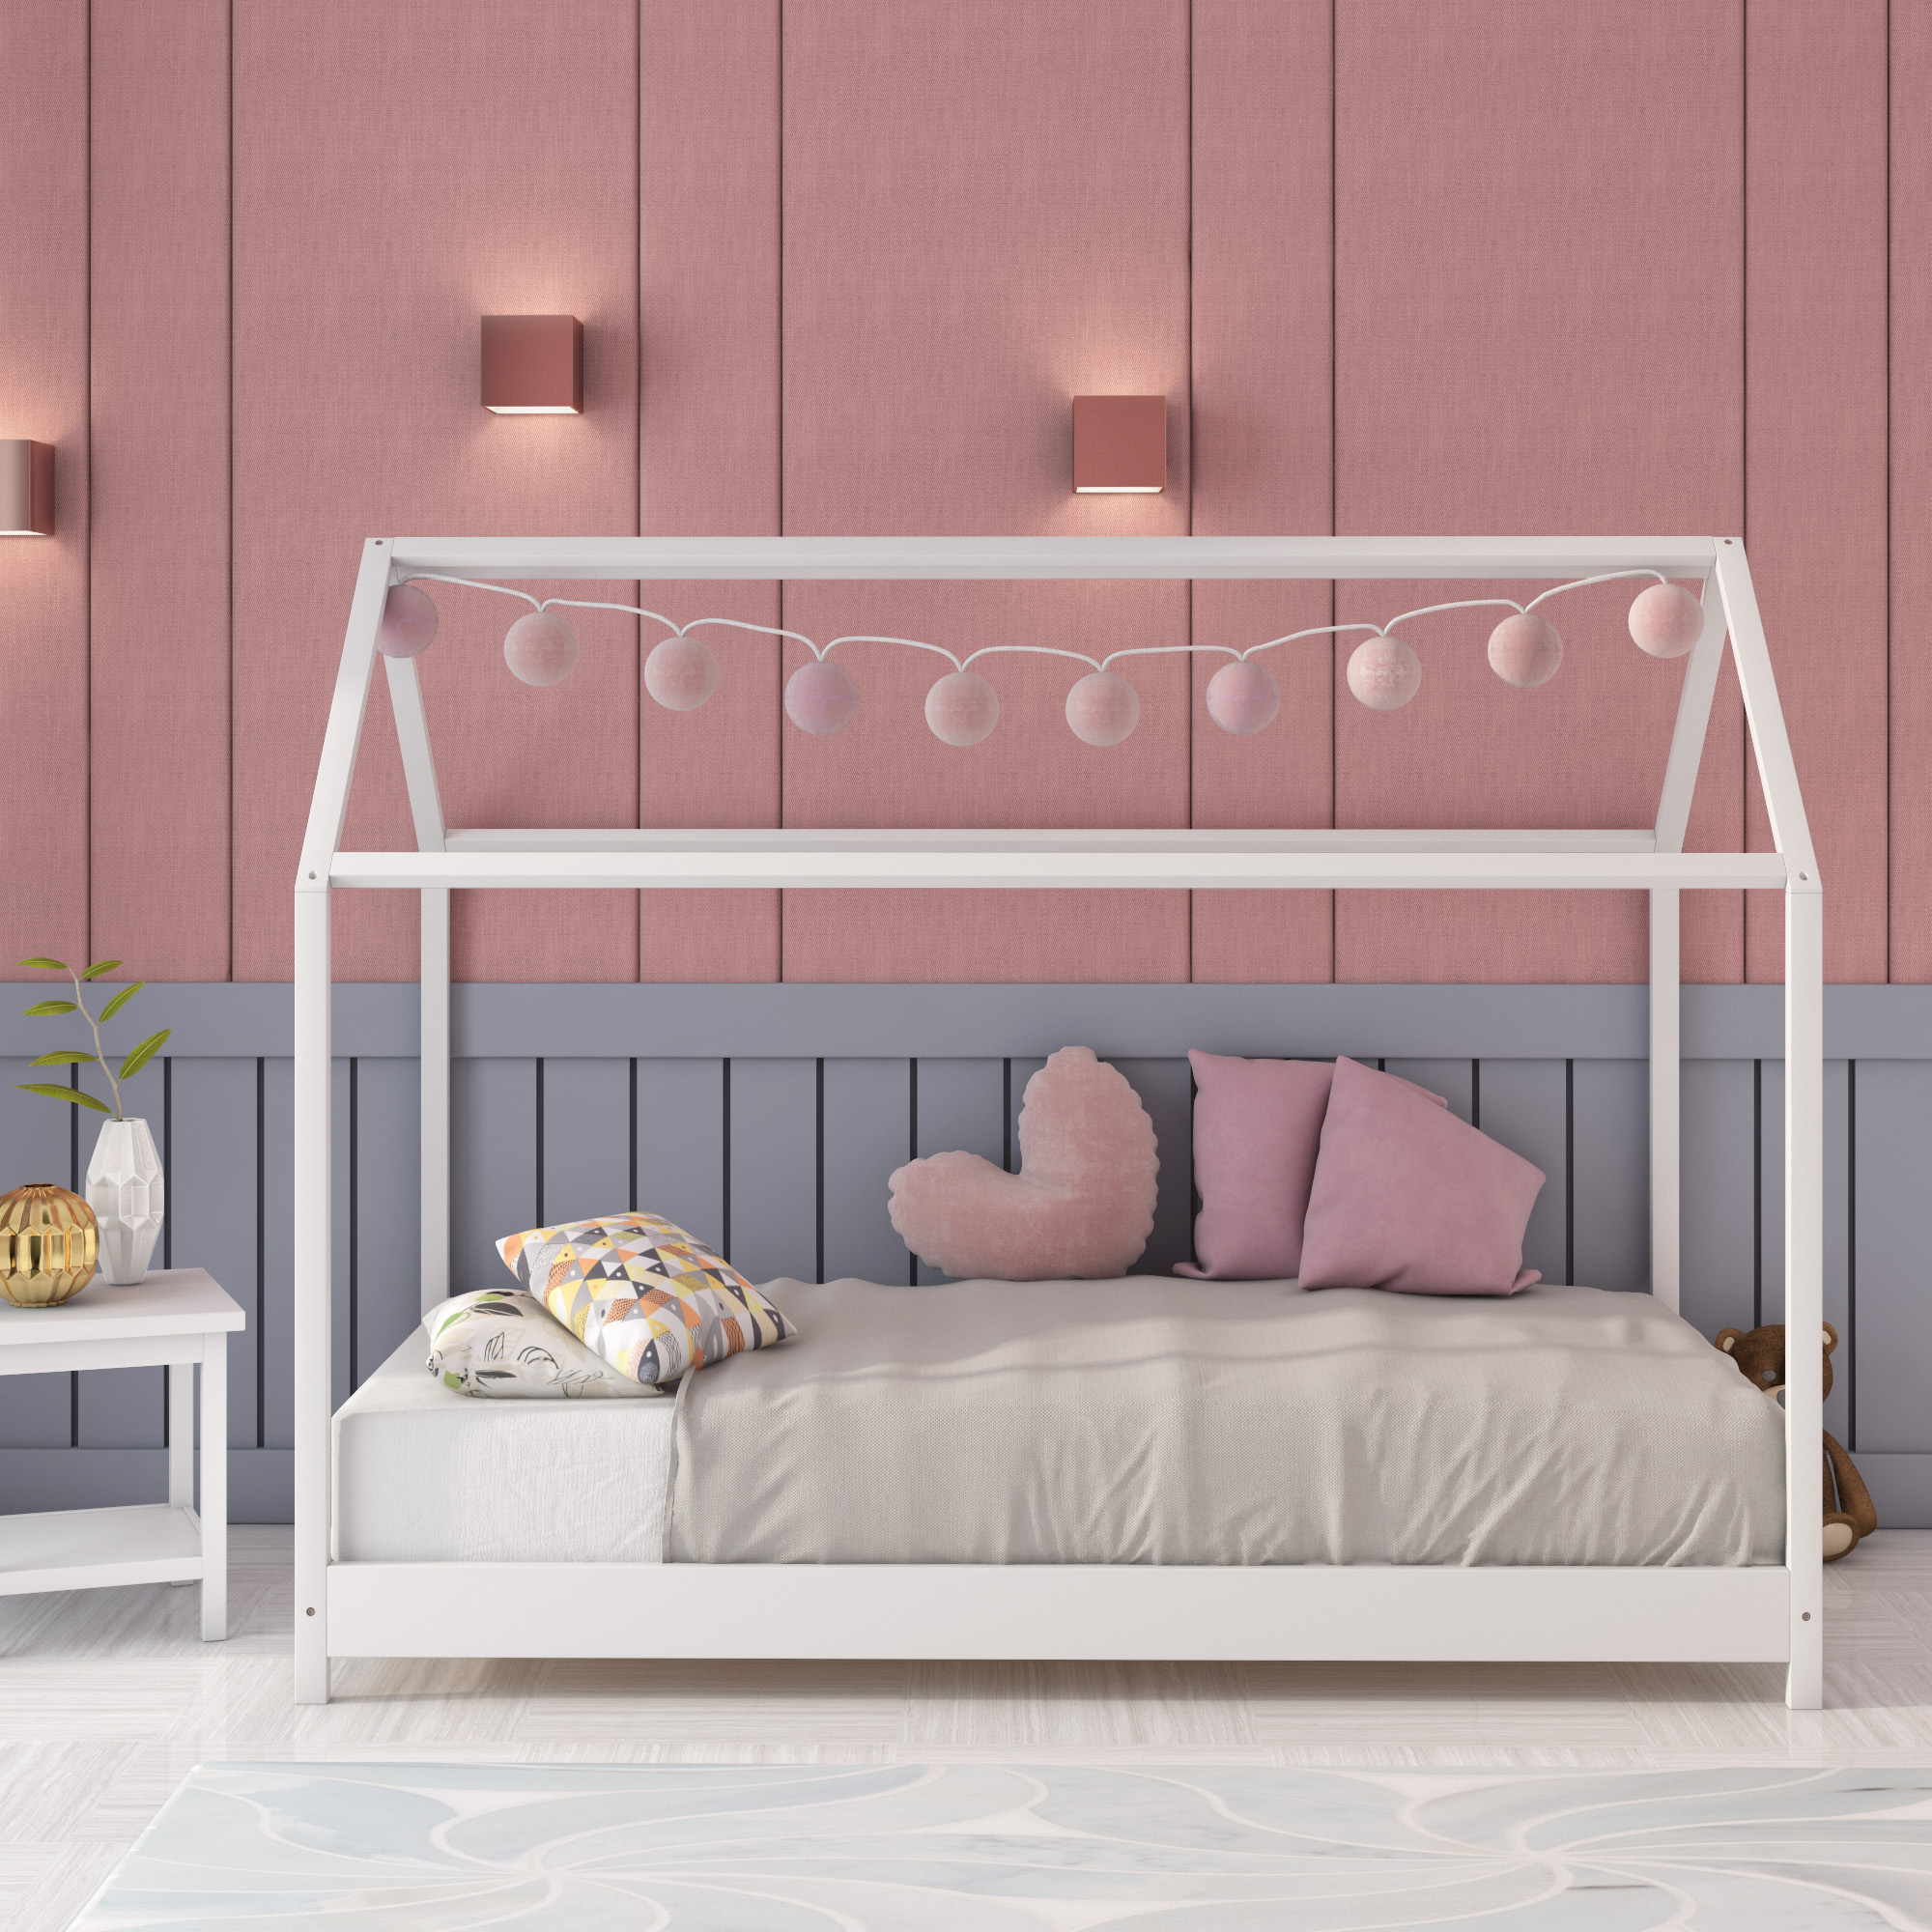 Panana Children Baby Bed Frame For Boy Girl With Bed Roof Single Bed Solid Pine Wood  Timber Kids House Bedroom Pretty Furniture